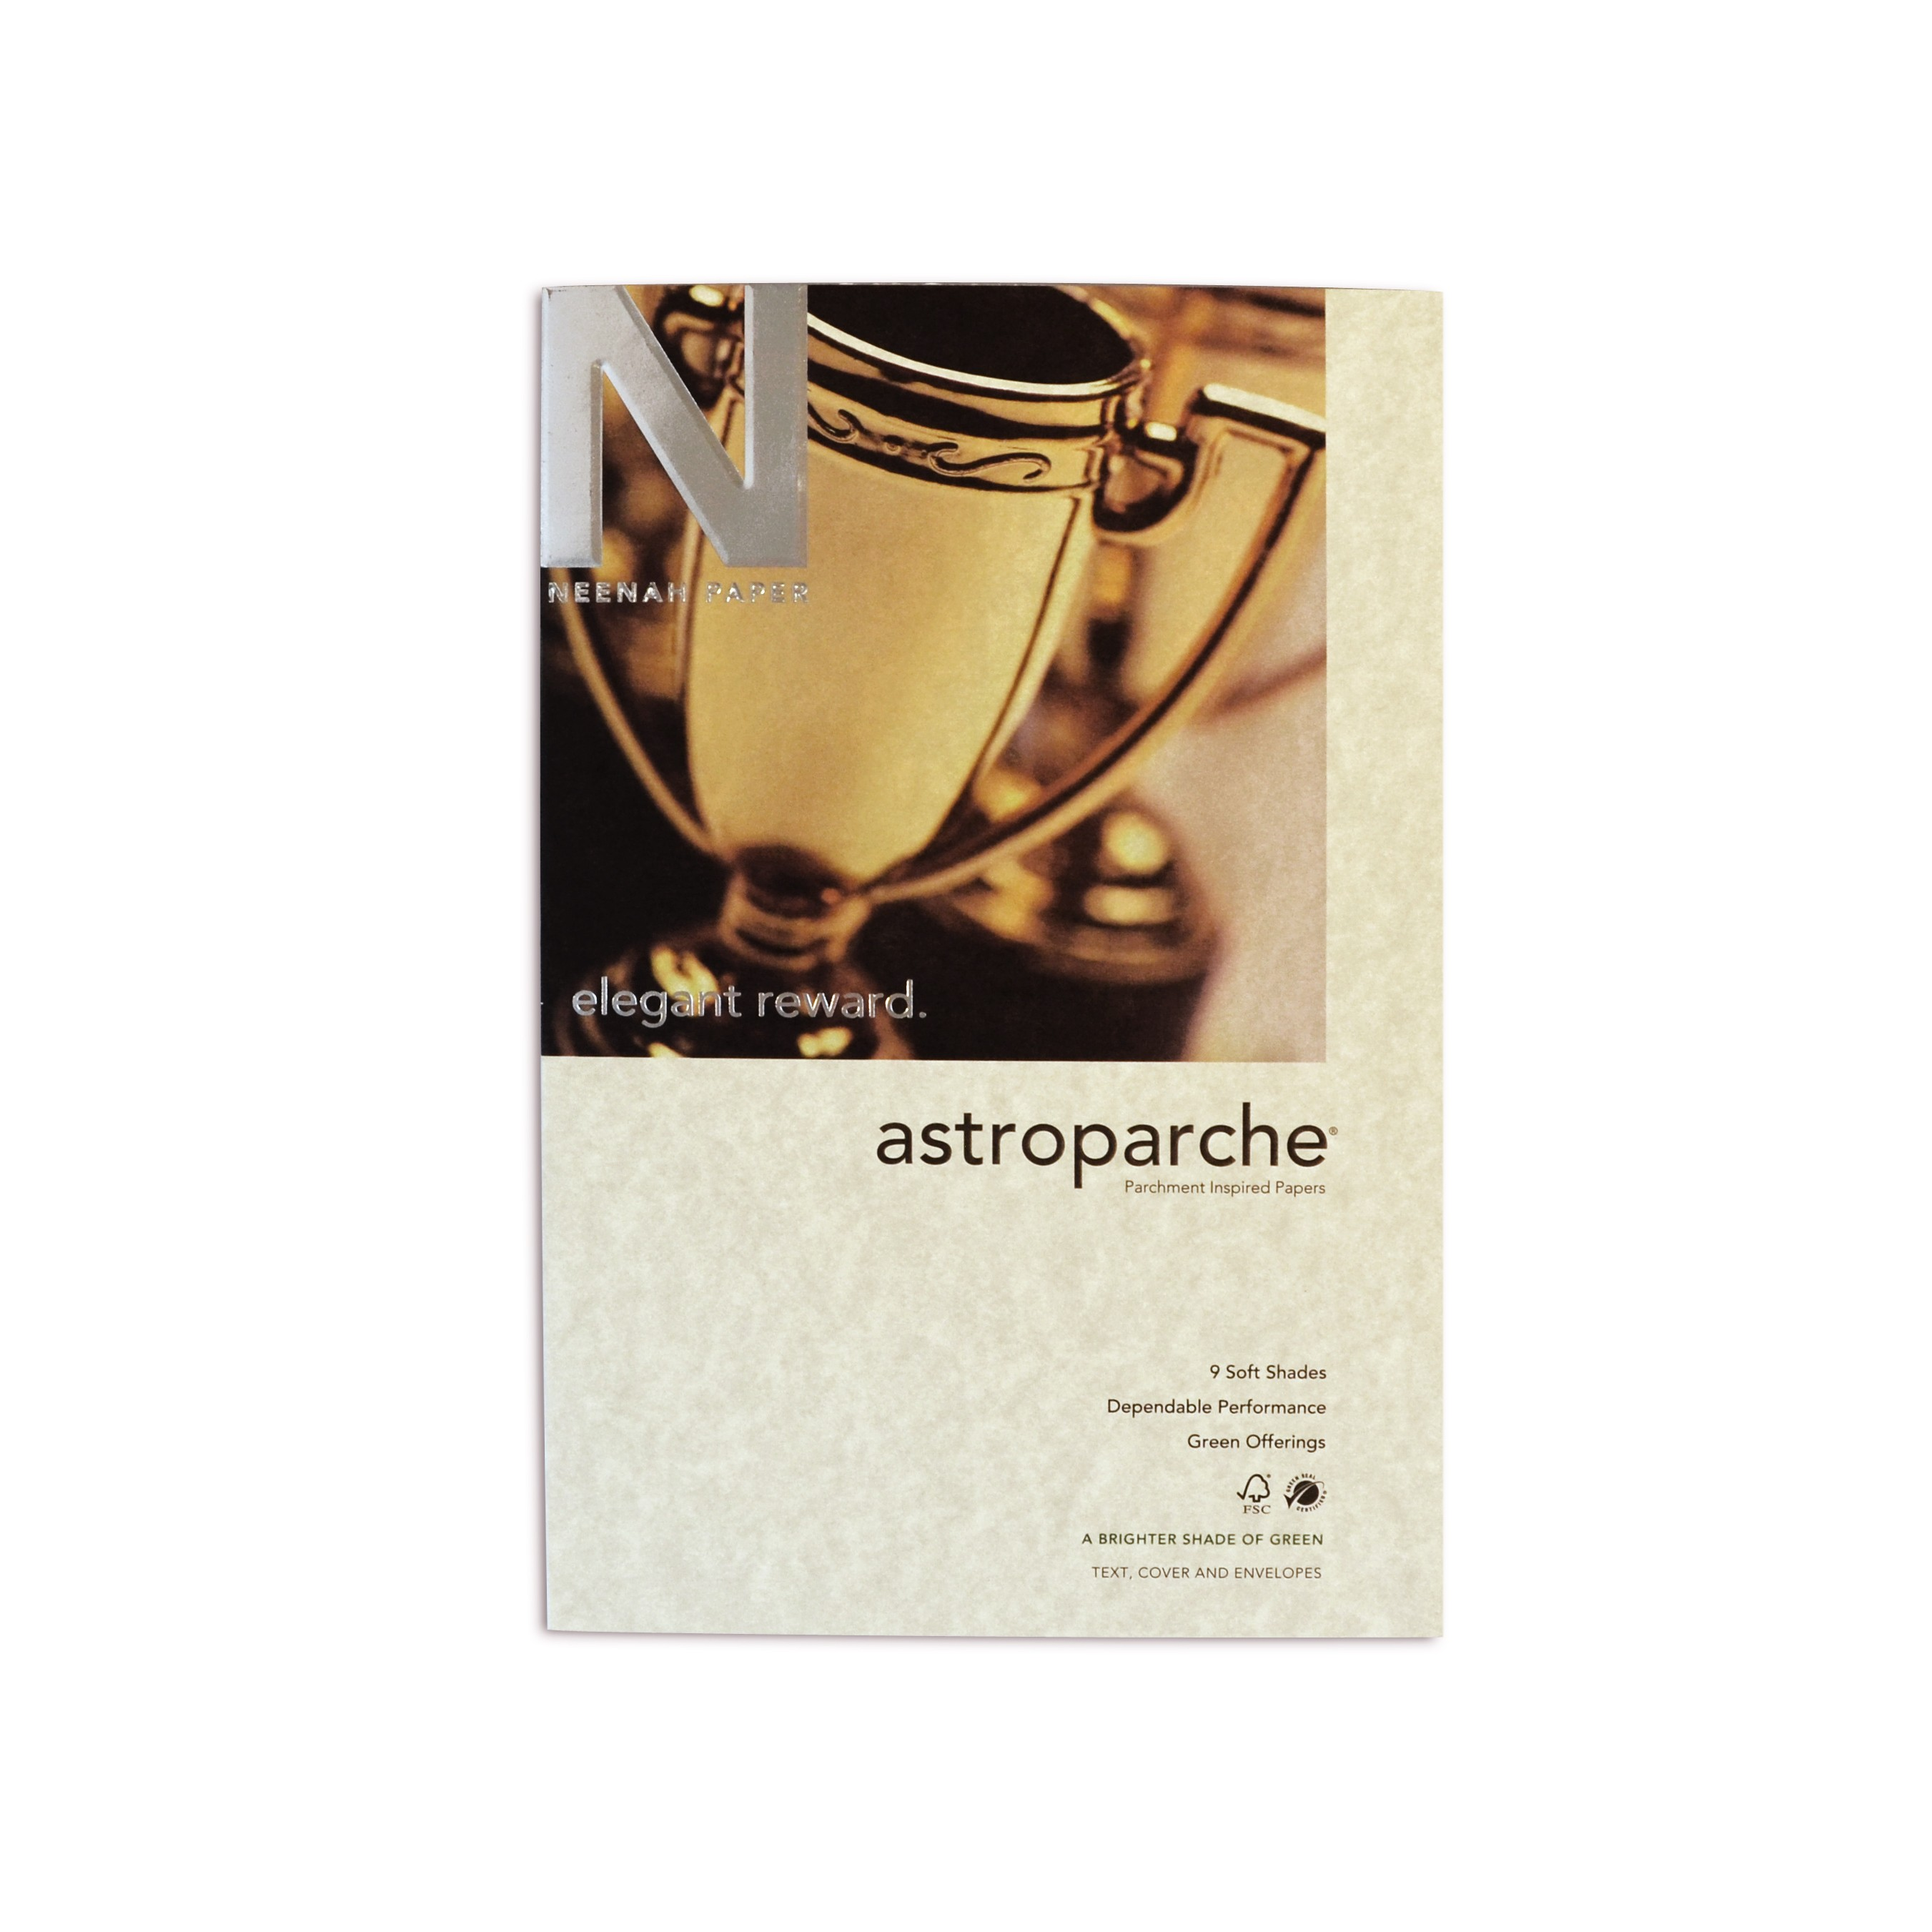 astroparche paper Astroparche cover aged 11x17 65lb 250/pkg p/c: cutwapag47 manufacturer the subtle color palette adds a touch of class to menus, certificates, awards, and more astroparche is environmentally friendly by being fsc certified and containing 30% recycled paper professionals available.